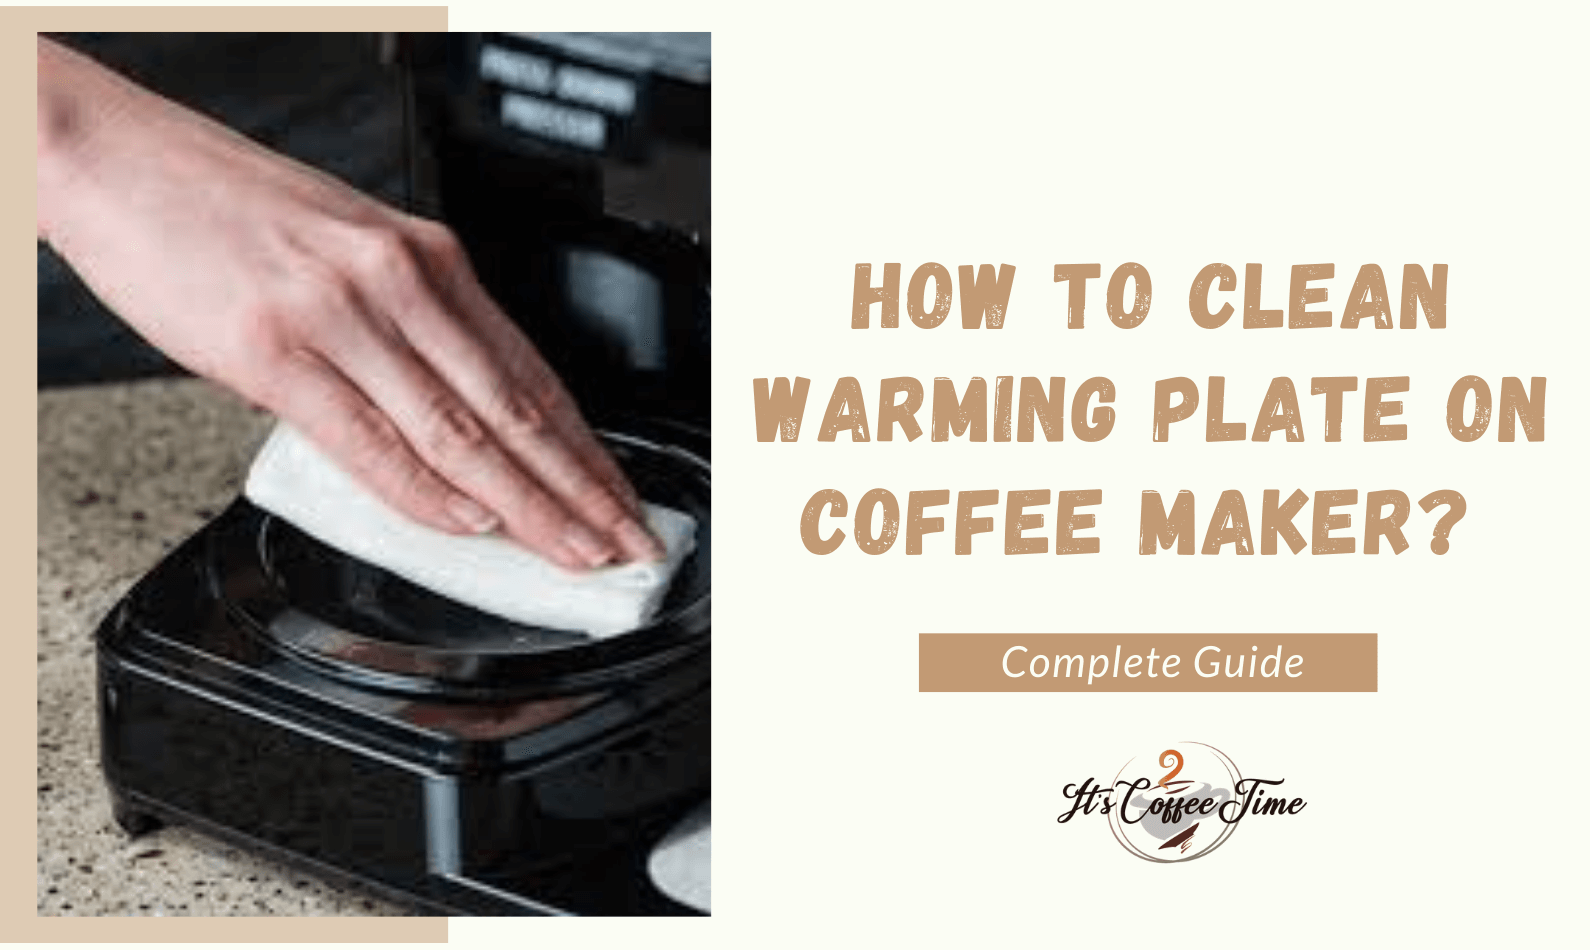 How to Clean Warming plate on Coffee Maker